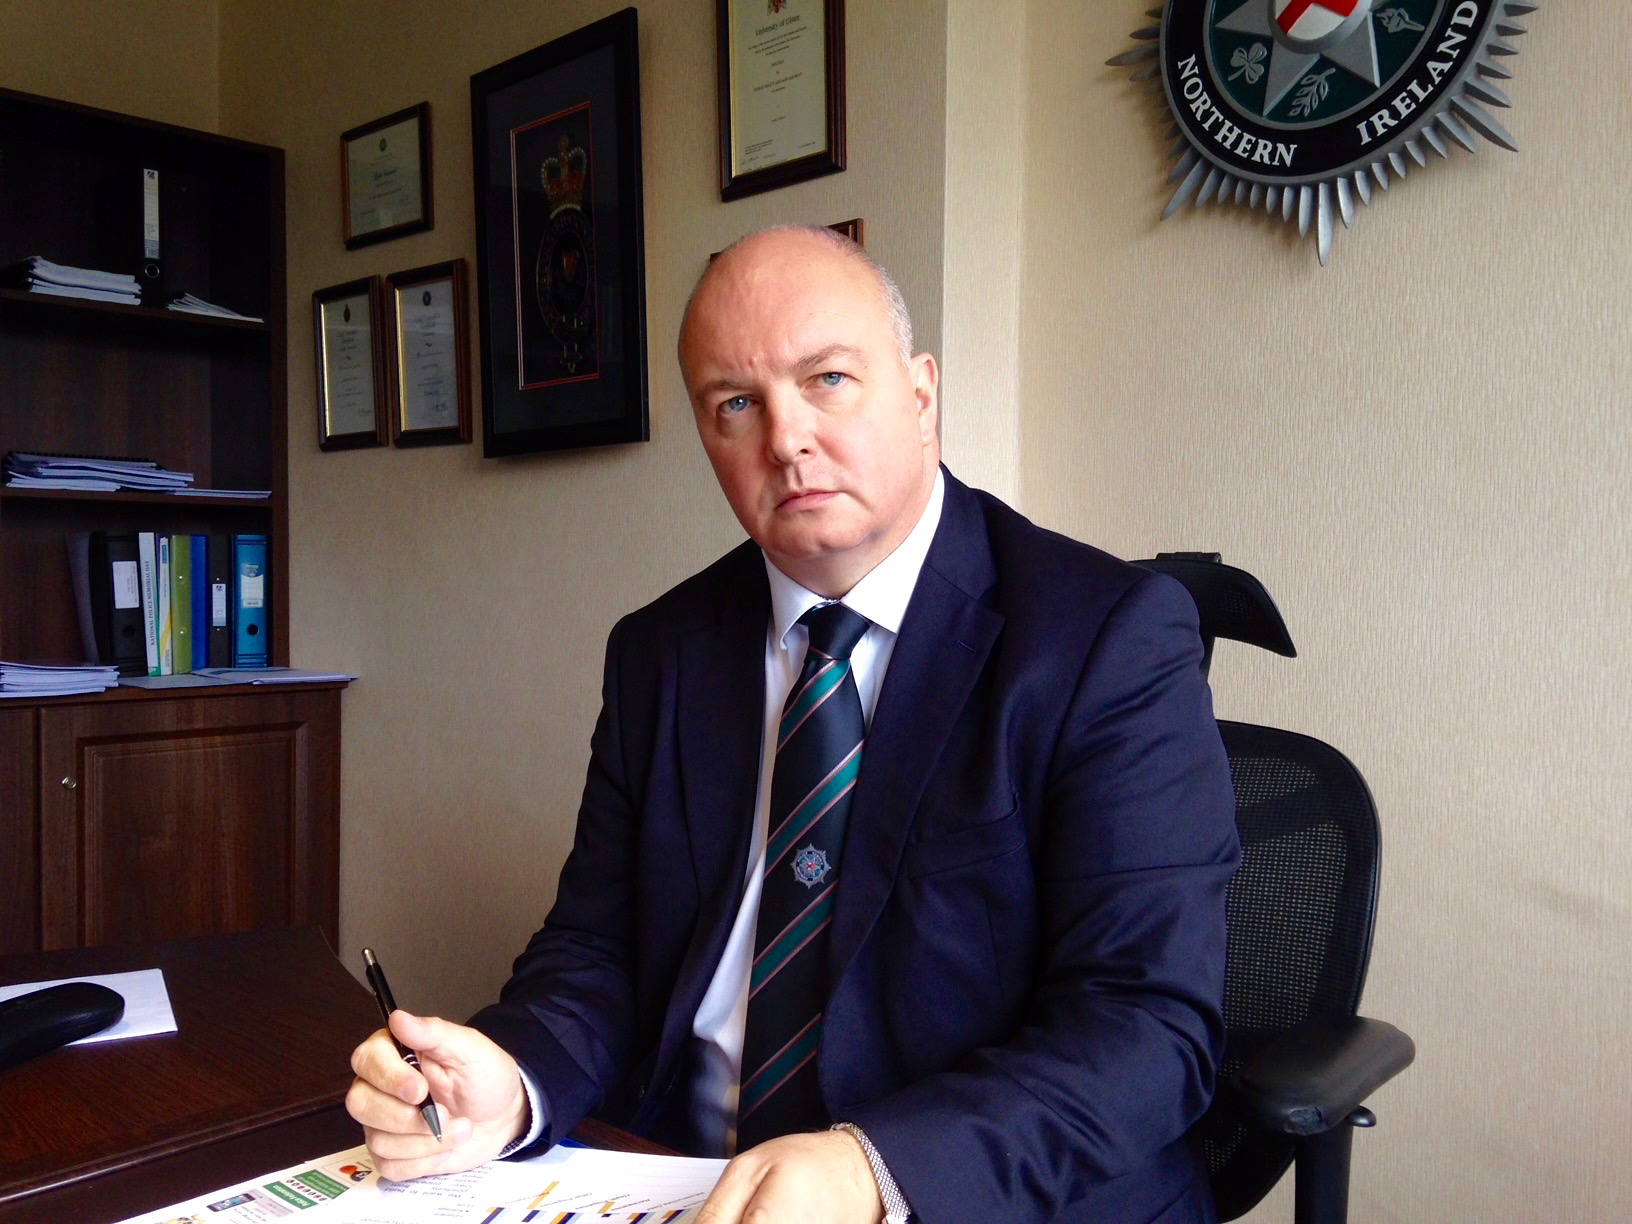 PFNI condemns attempted murder of police officer